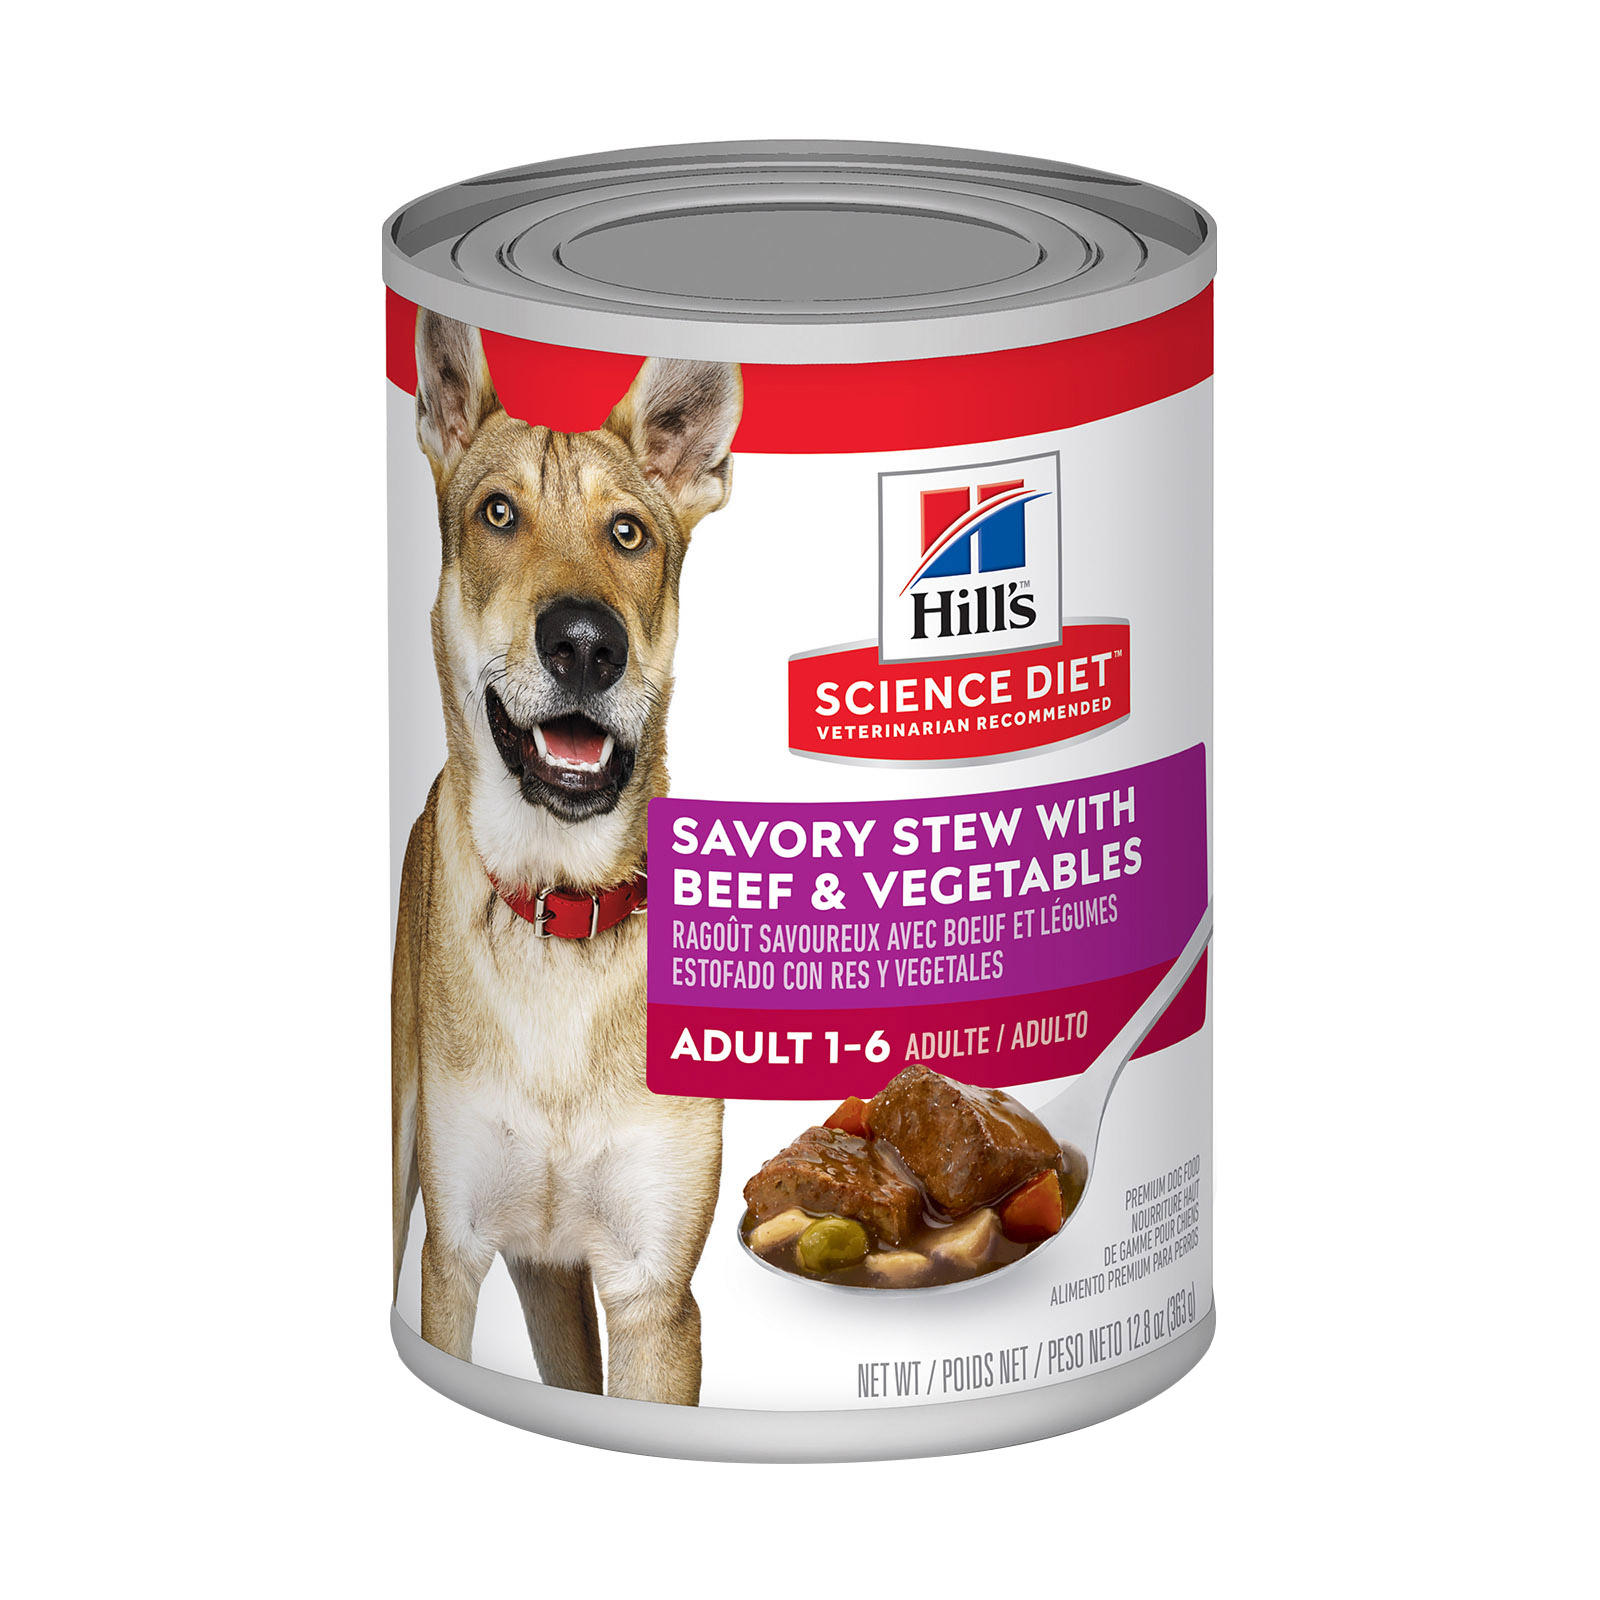 Hill's Science Diet Adult Savory Stew Beef & Vegetable Canned Dog Food